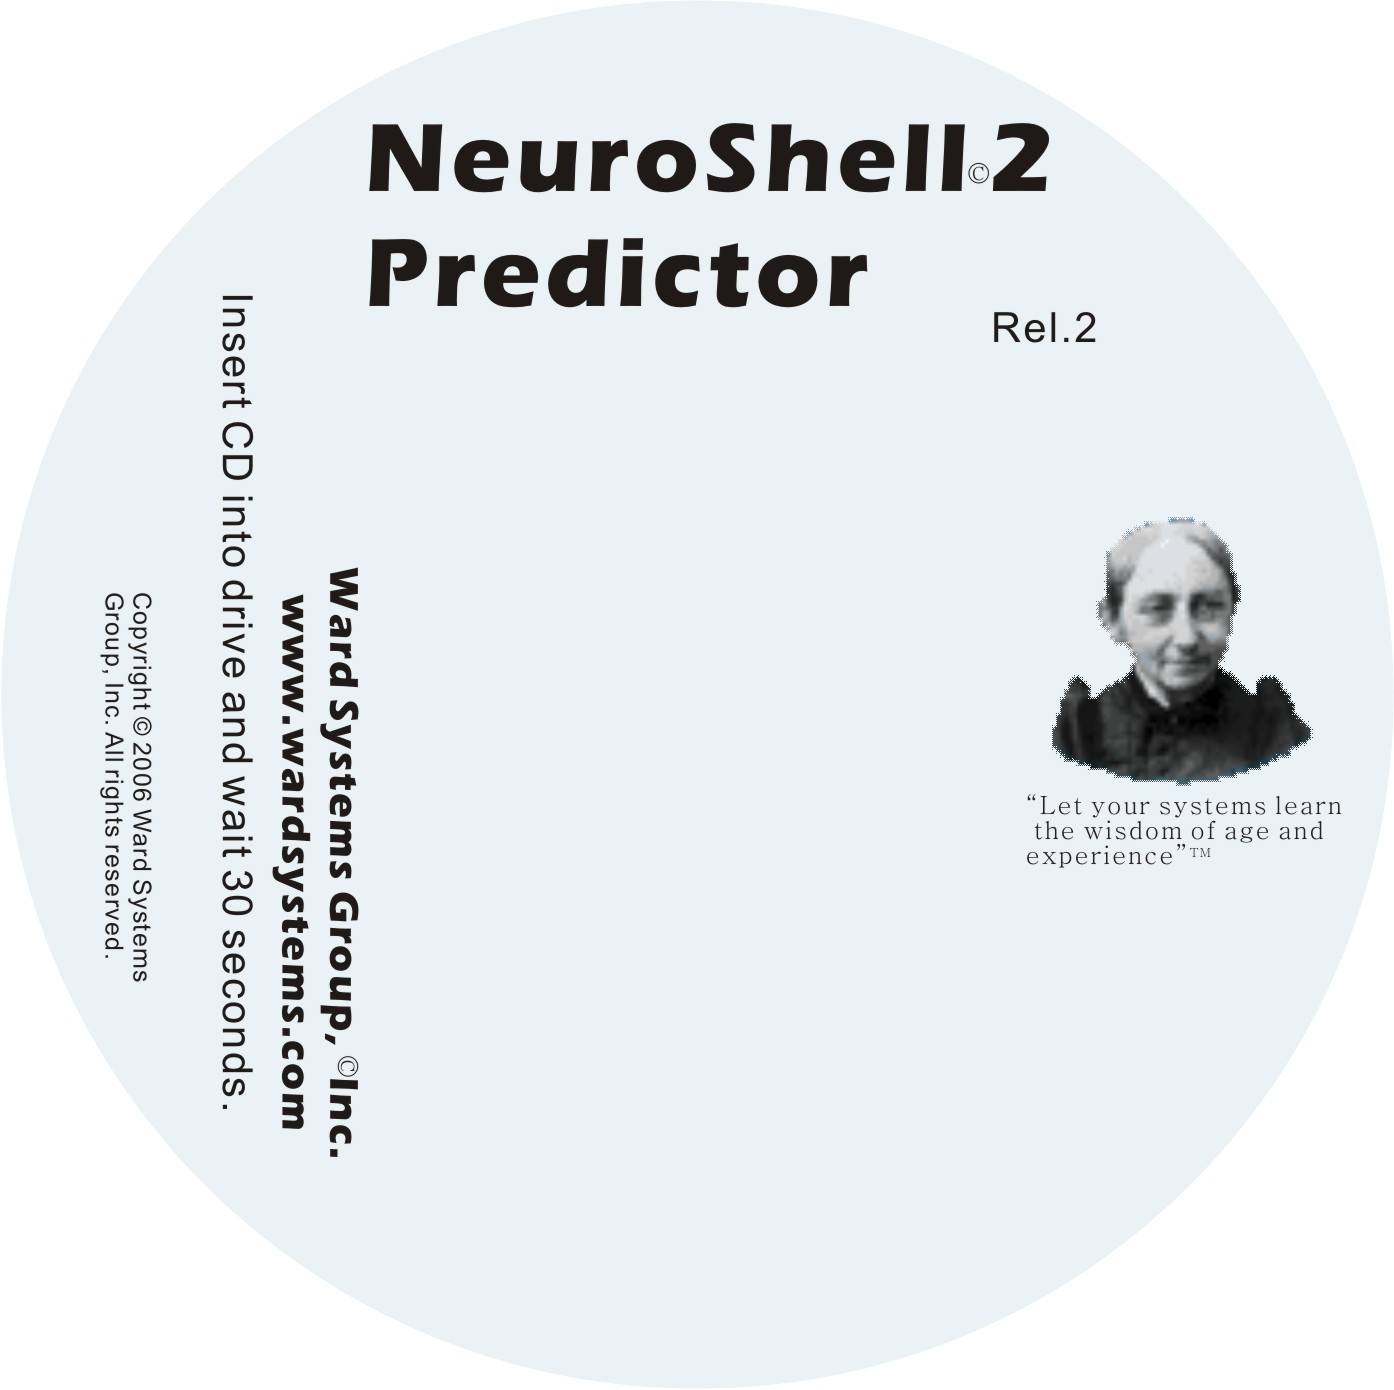 NeuroShell Predictor